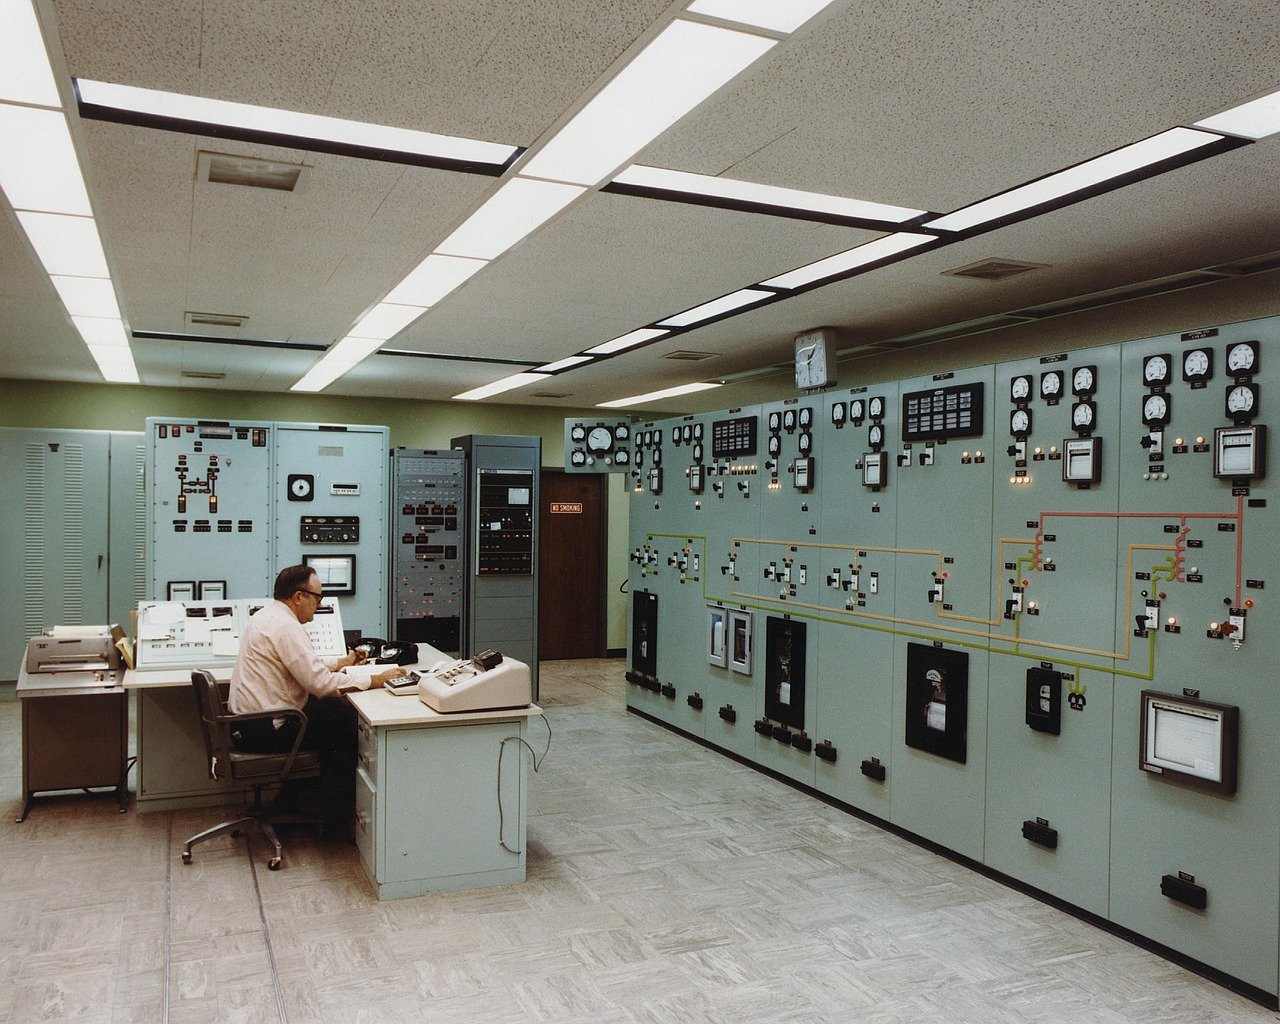 E-067 Gas Insulated Substation Control and Monitoring